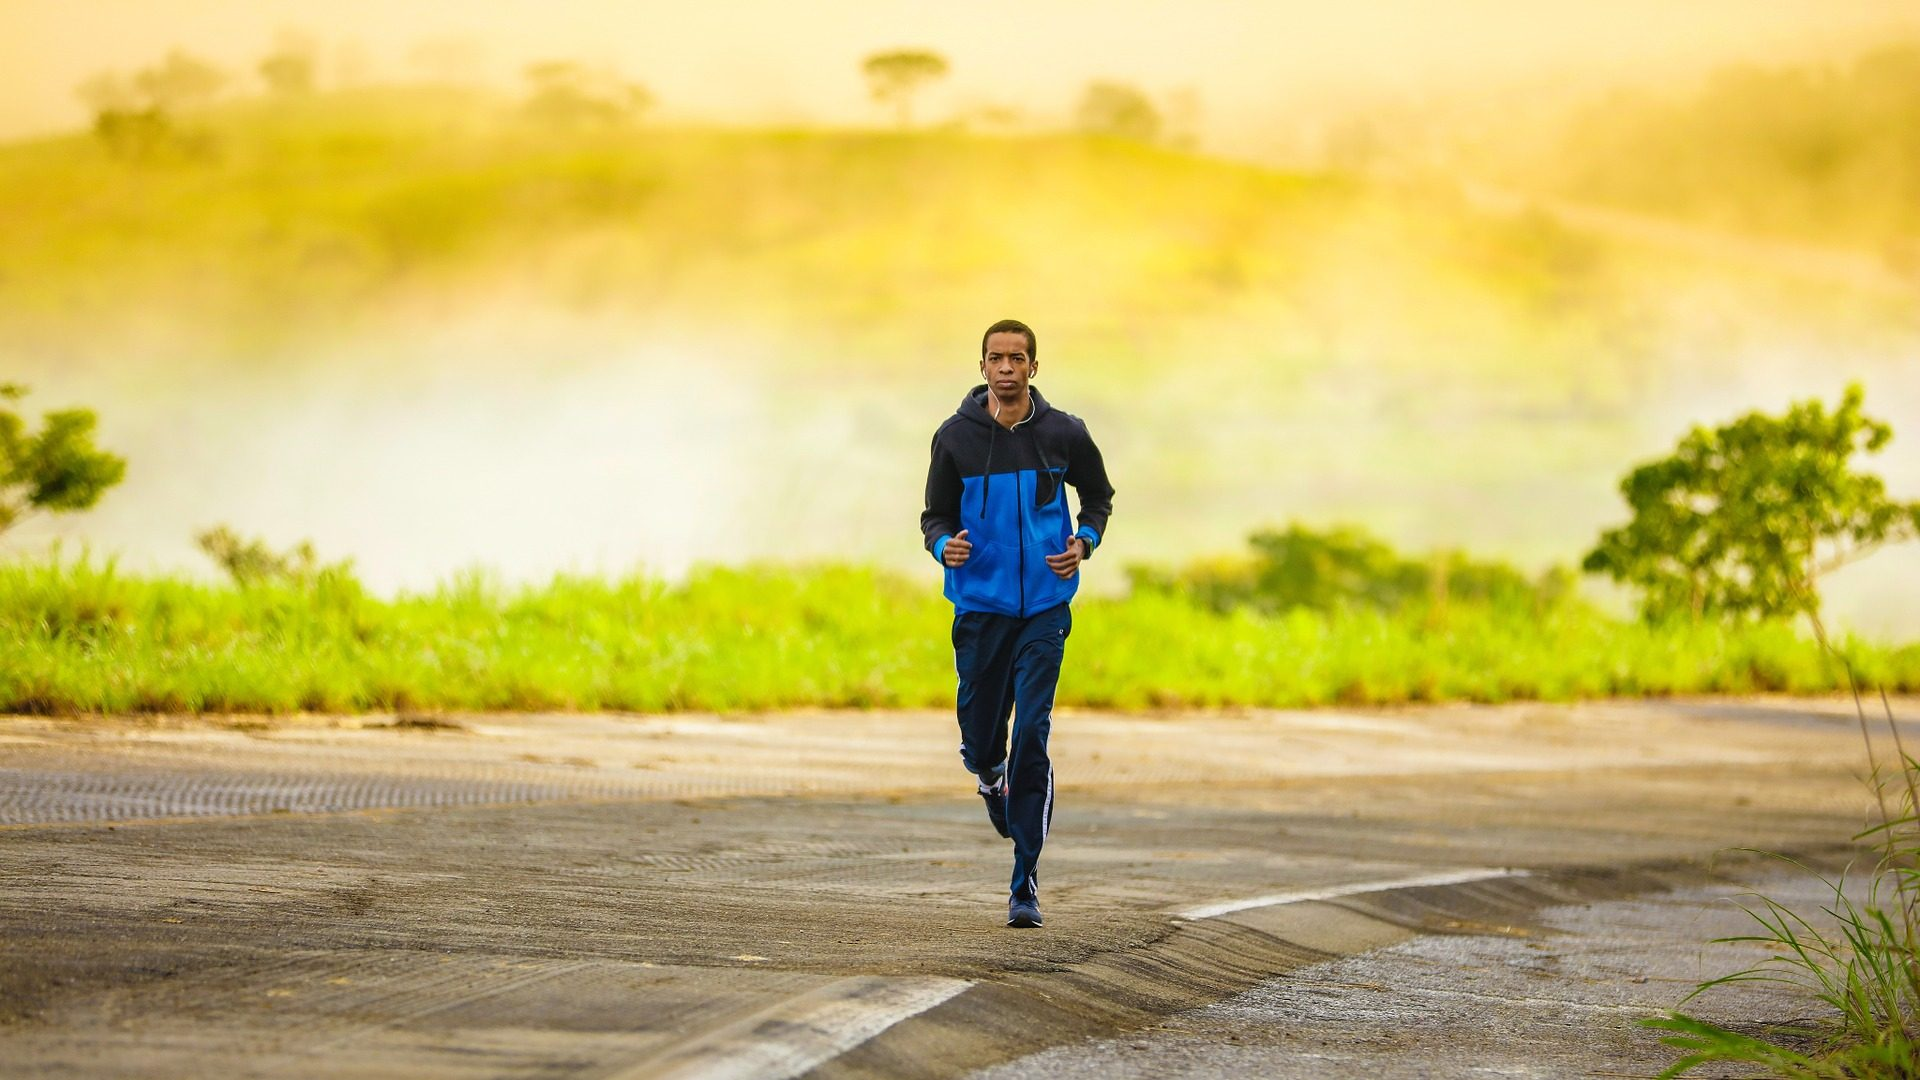 Physical activity and hypoglycemia: can glucagon be the key to hypoglycemia prevention?